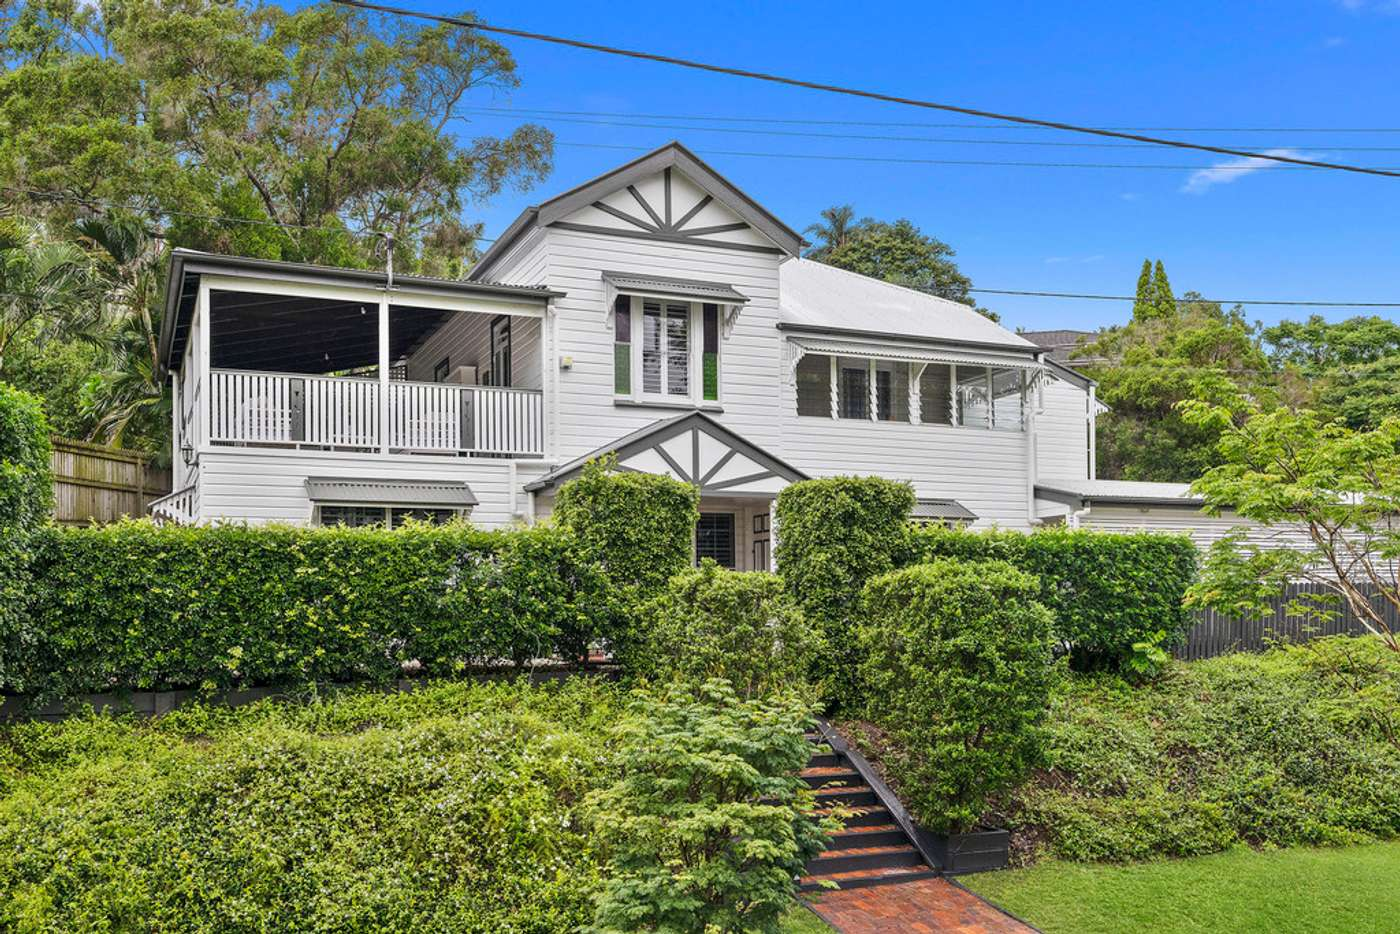 Main view of Homely house listing, 145 Abuklea Street, Newmarket QLD 4051